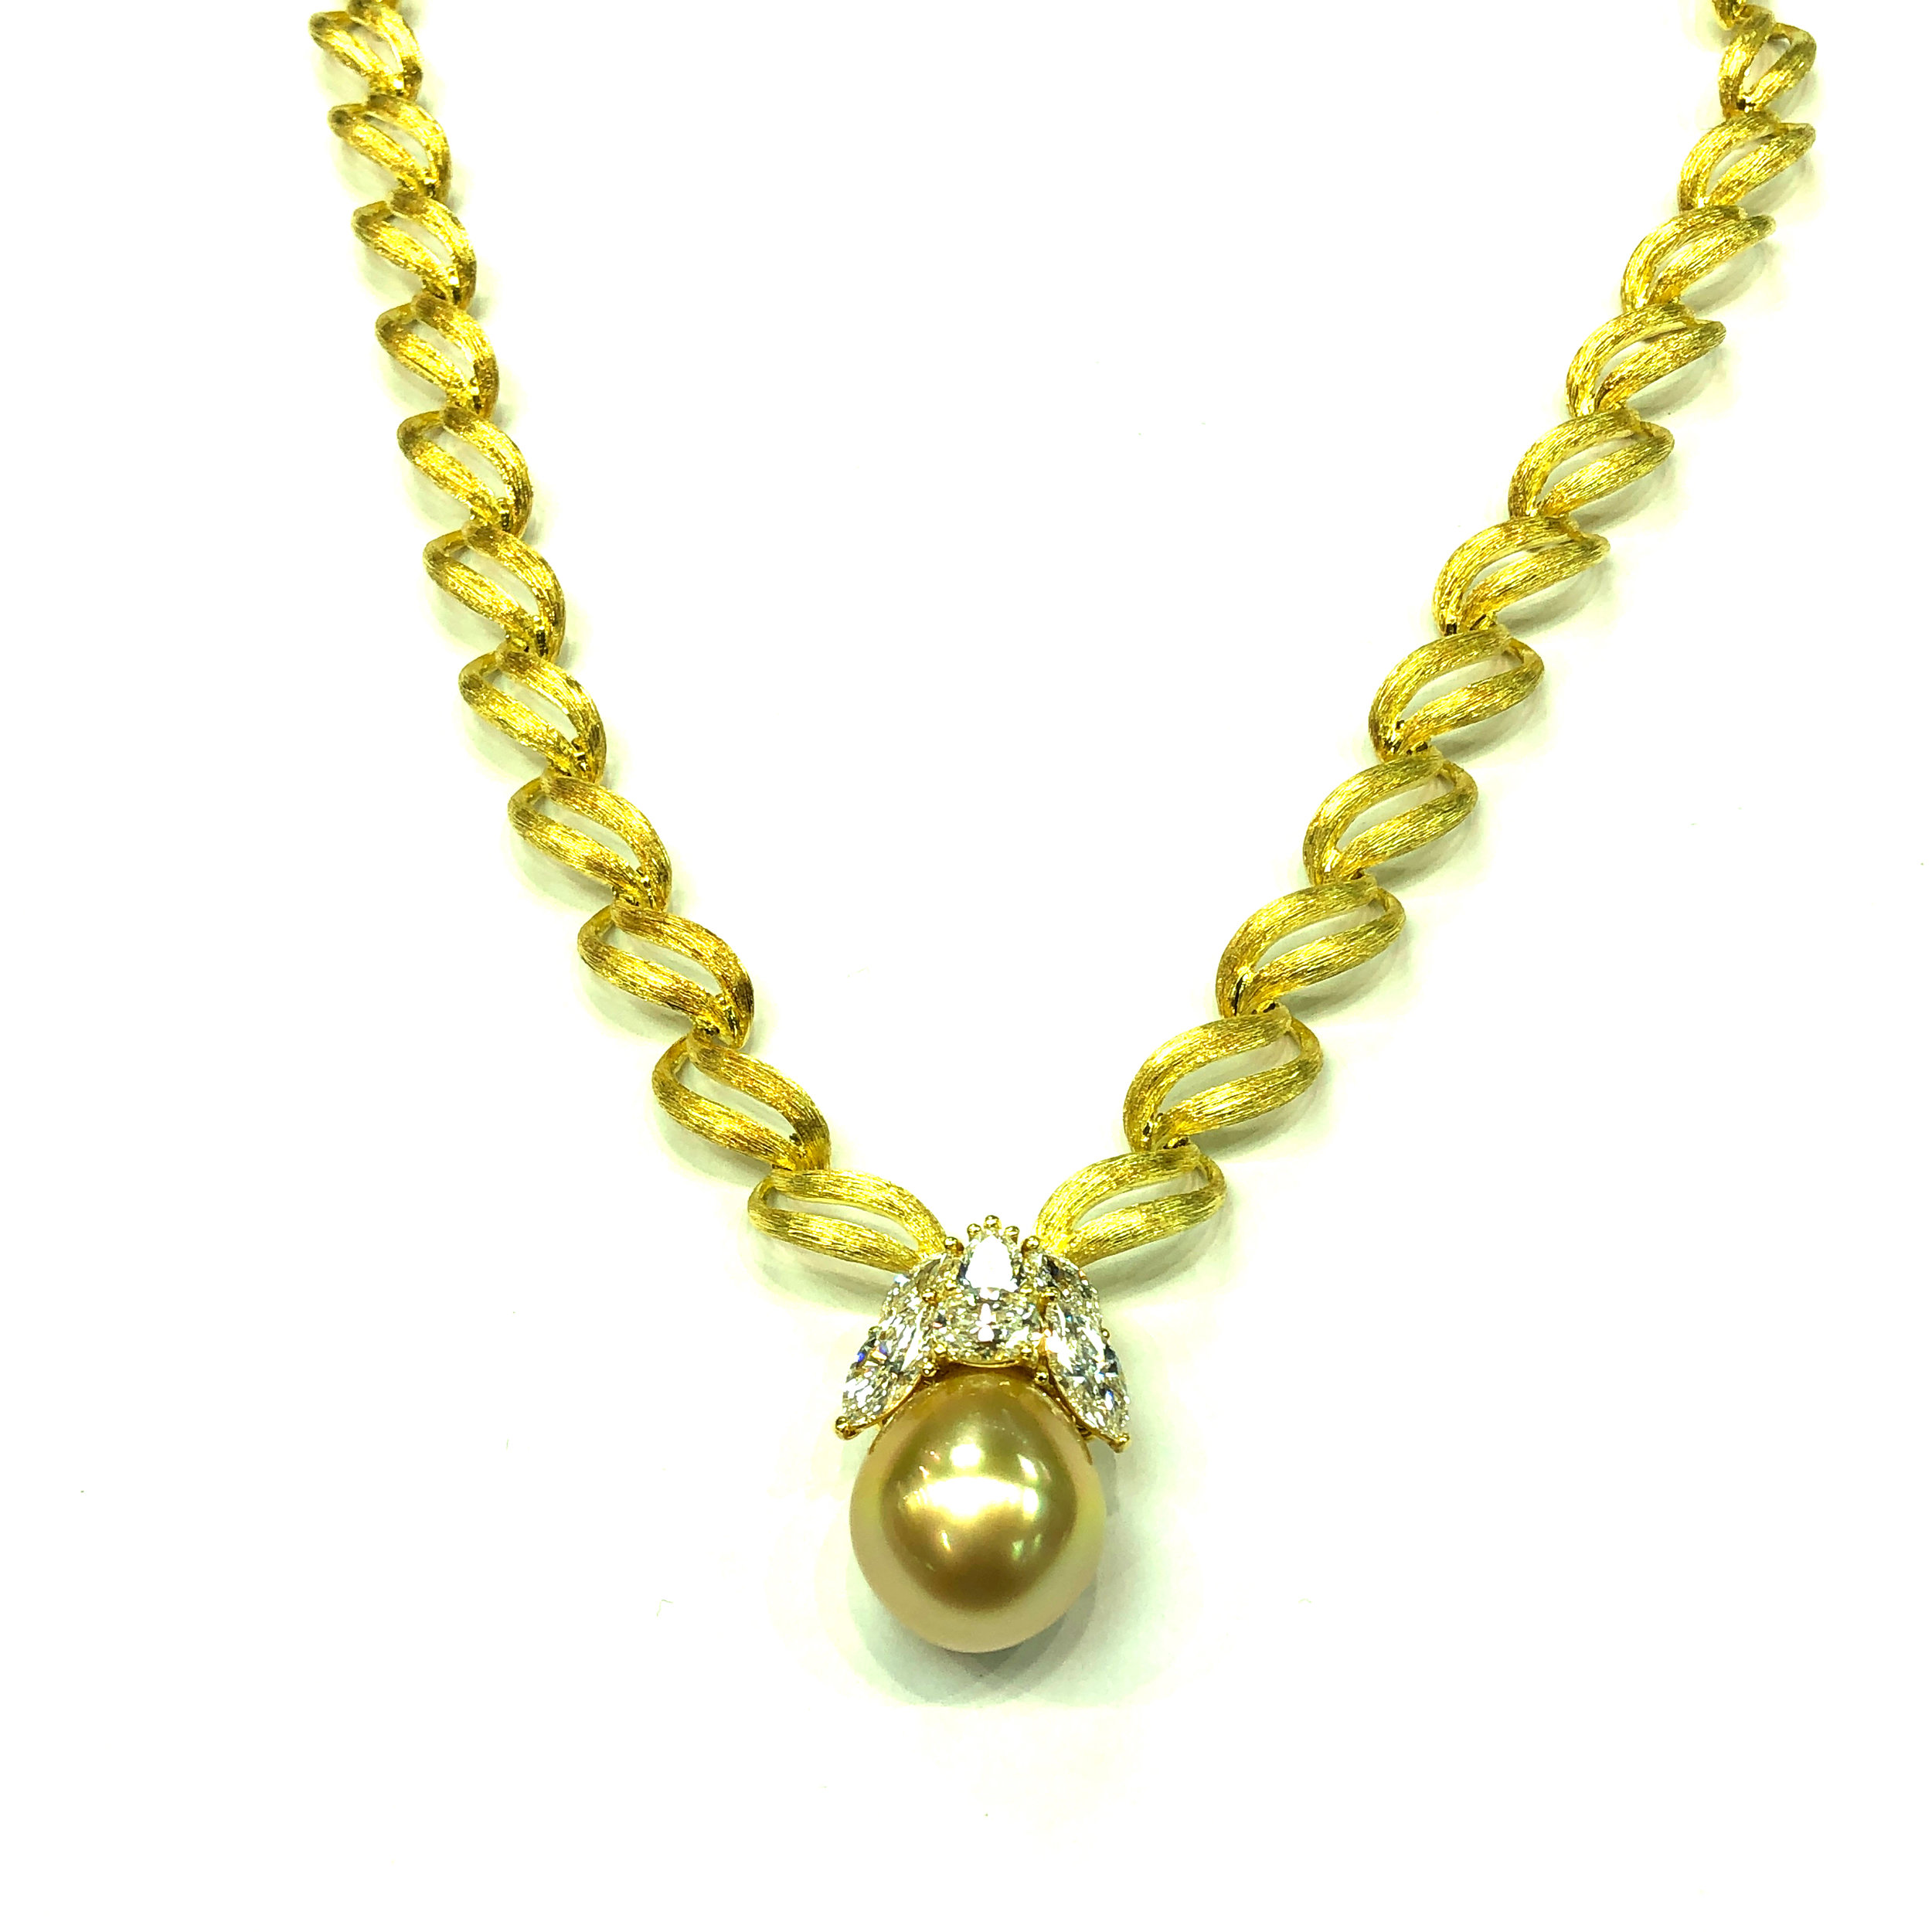 Ribbon Necklace with Champagne Color Pearl & Diamond Pendant, 18kt Yellow Gold,  Henry Dunay   Est. US$ 7,000-8,500